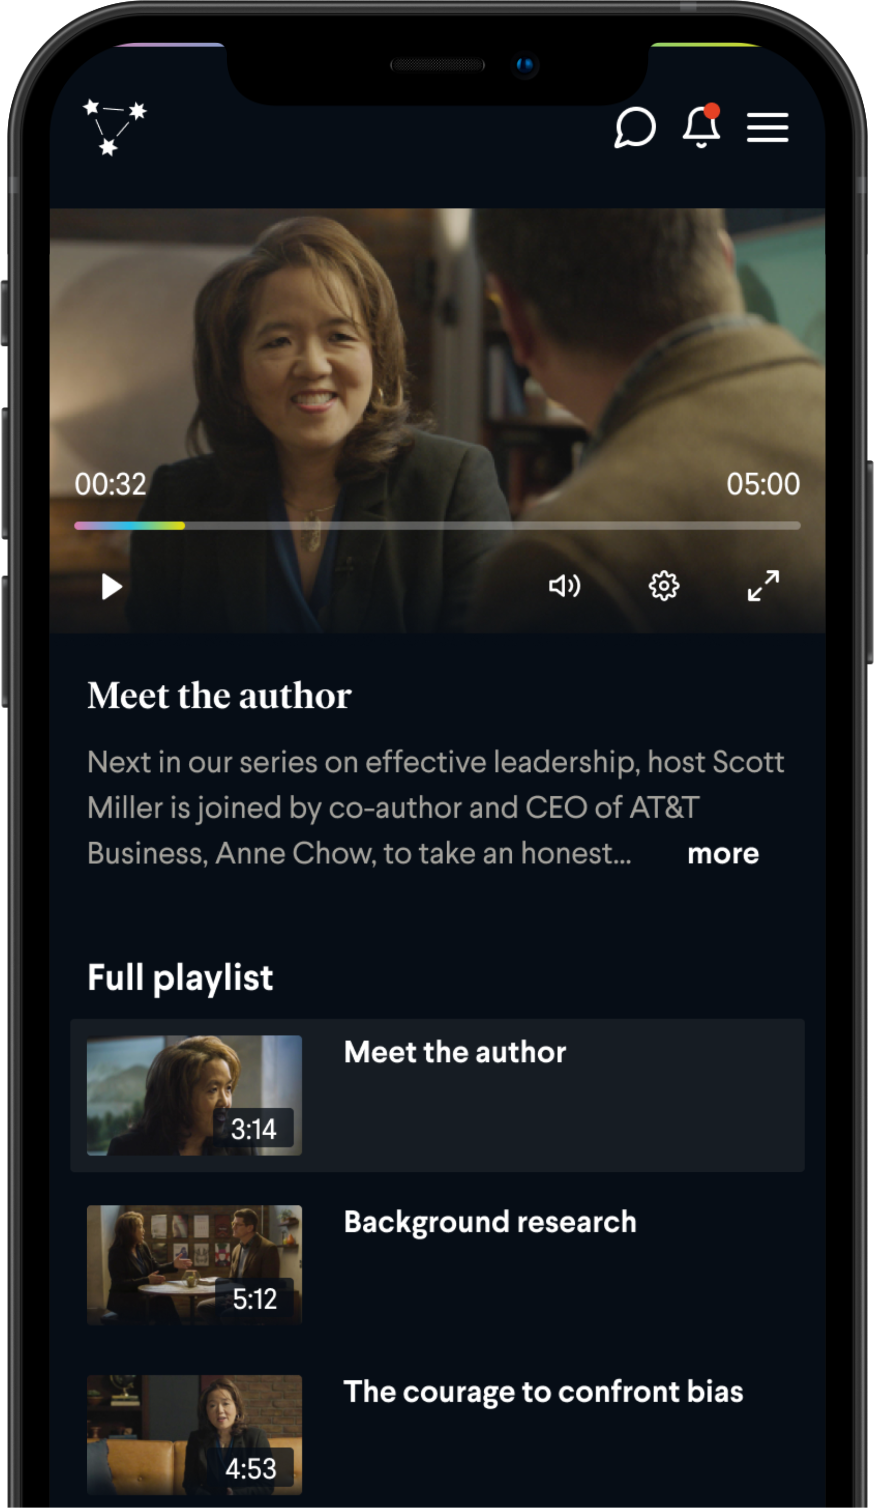 Playlist view of a premium book club on the BookClub app. Features footage of Anne Chow and Scott Miller in the FranklinCovey book club on Effective Leadership.